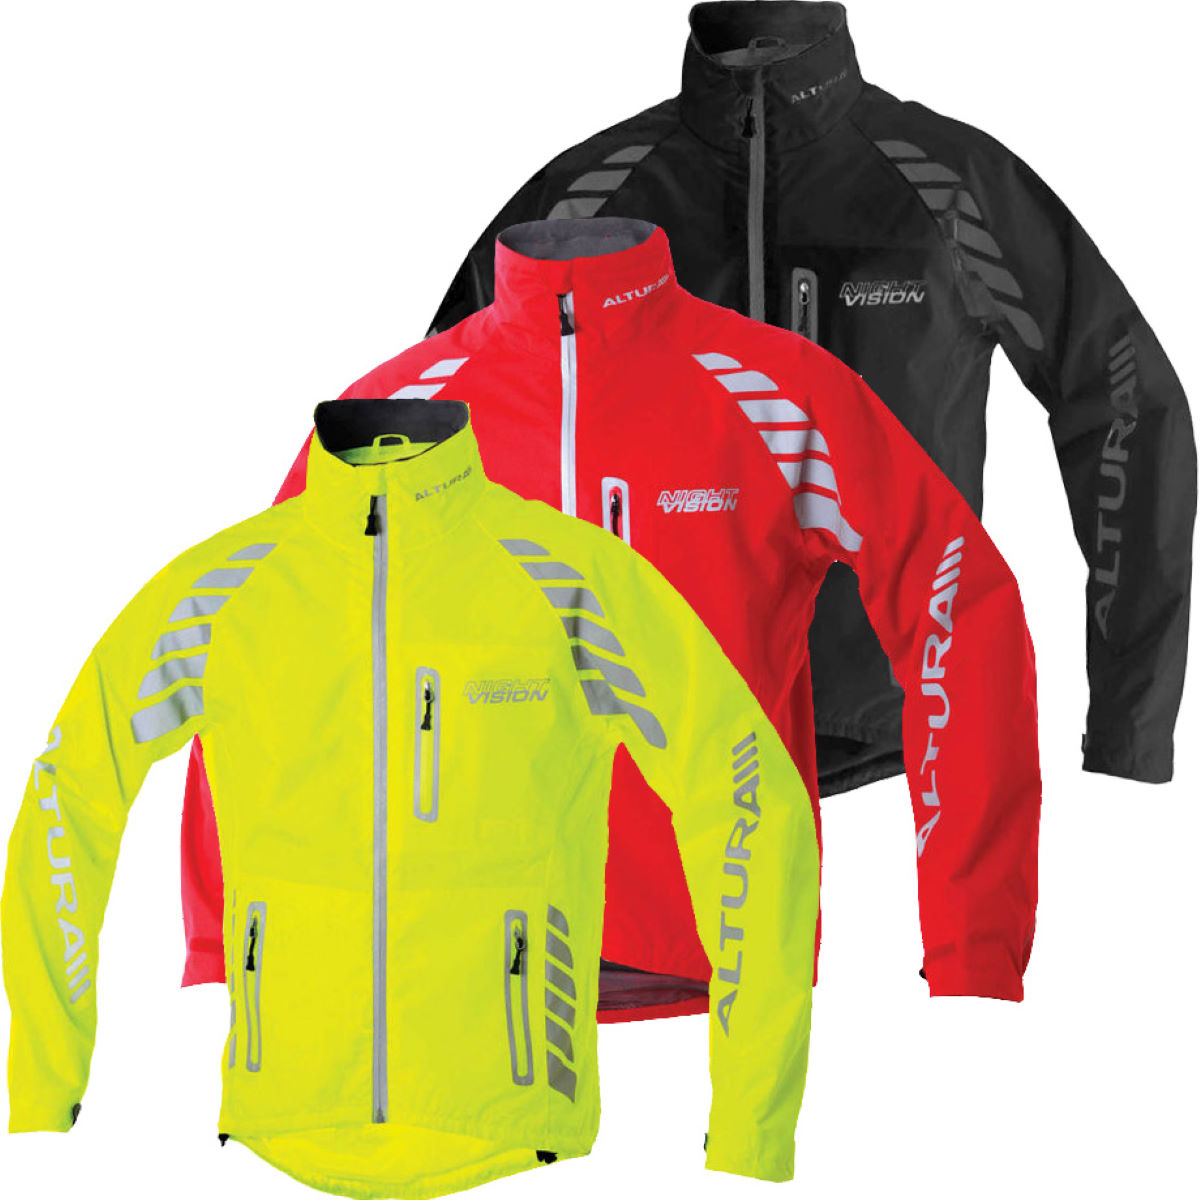 Altura Night Vision Evo Waterproof Cycling Jacket 2012